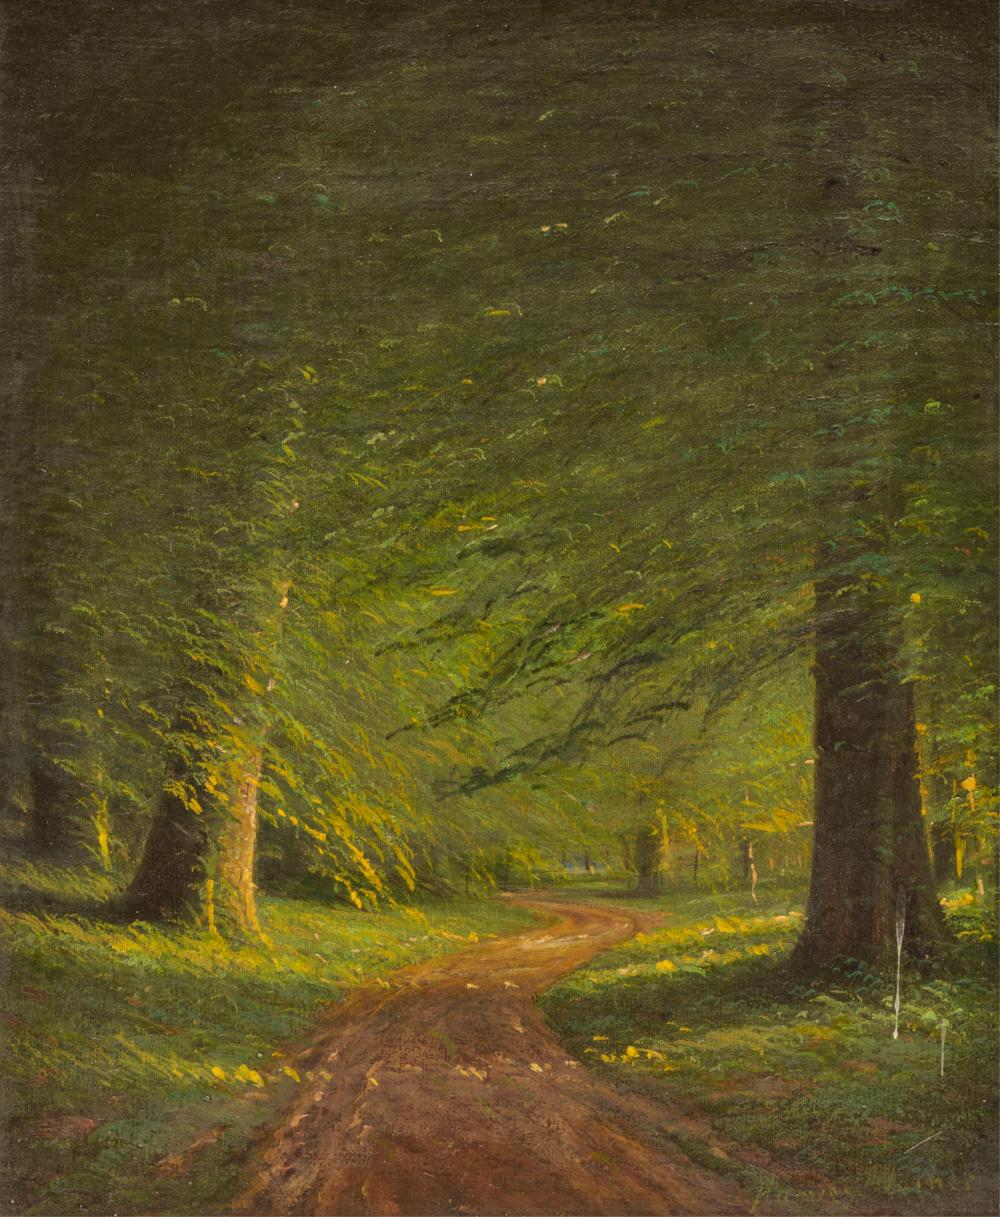 HARVEY JOINER, (American, 1852-1932), Road Through the Woods, oil on canvasboard, 12 x 10 in., frame: 20 x 17 3/4 in.